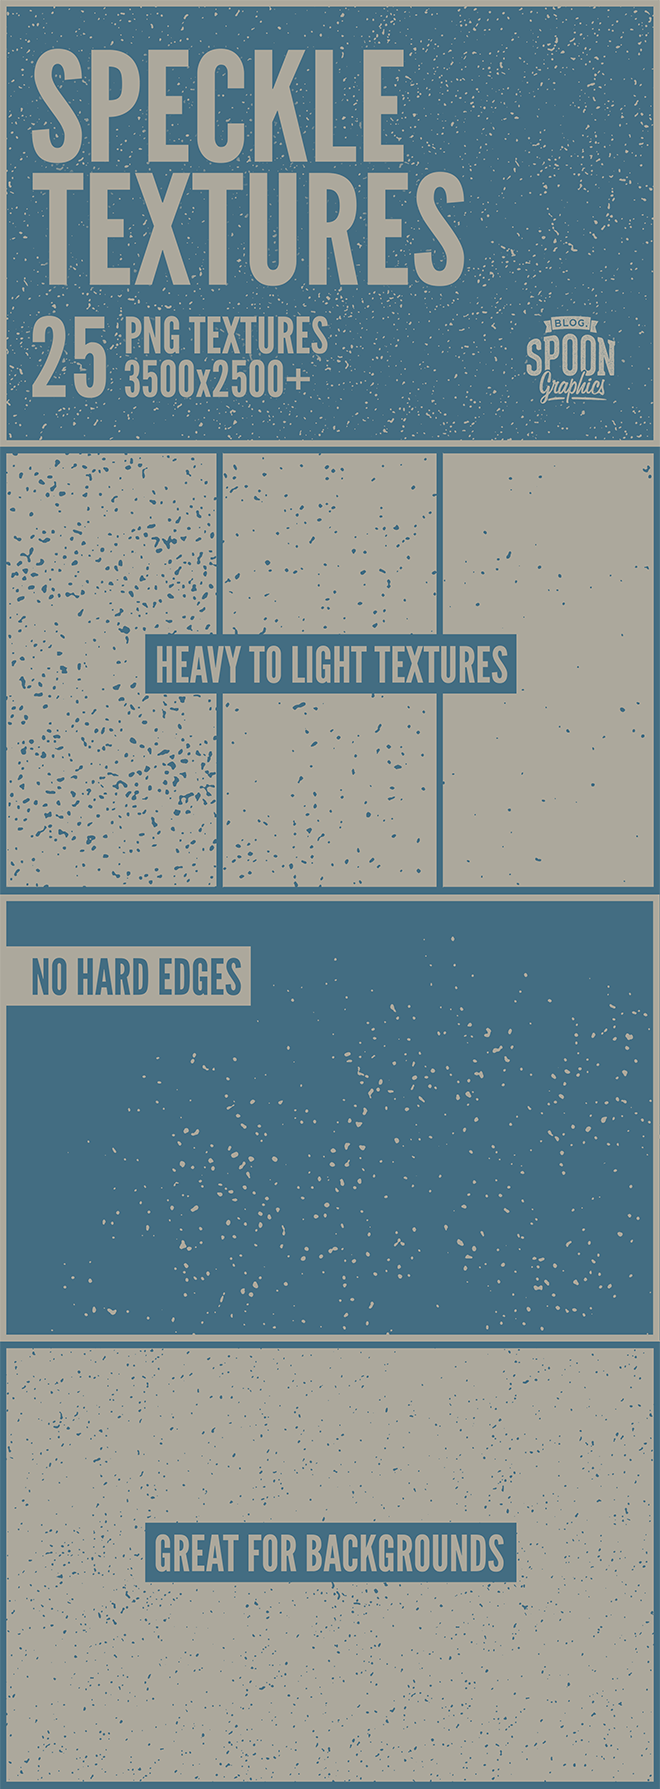 Download My New Collection of 25 Free Speckle Textures